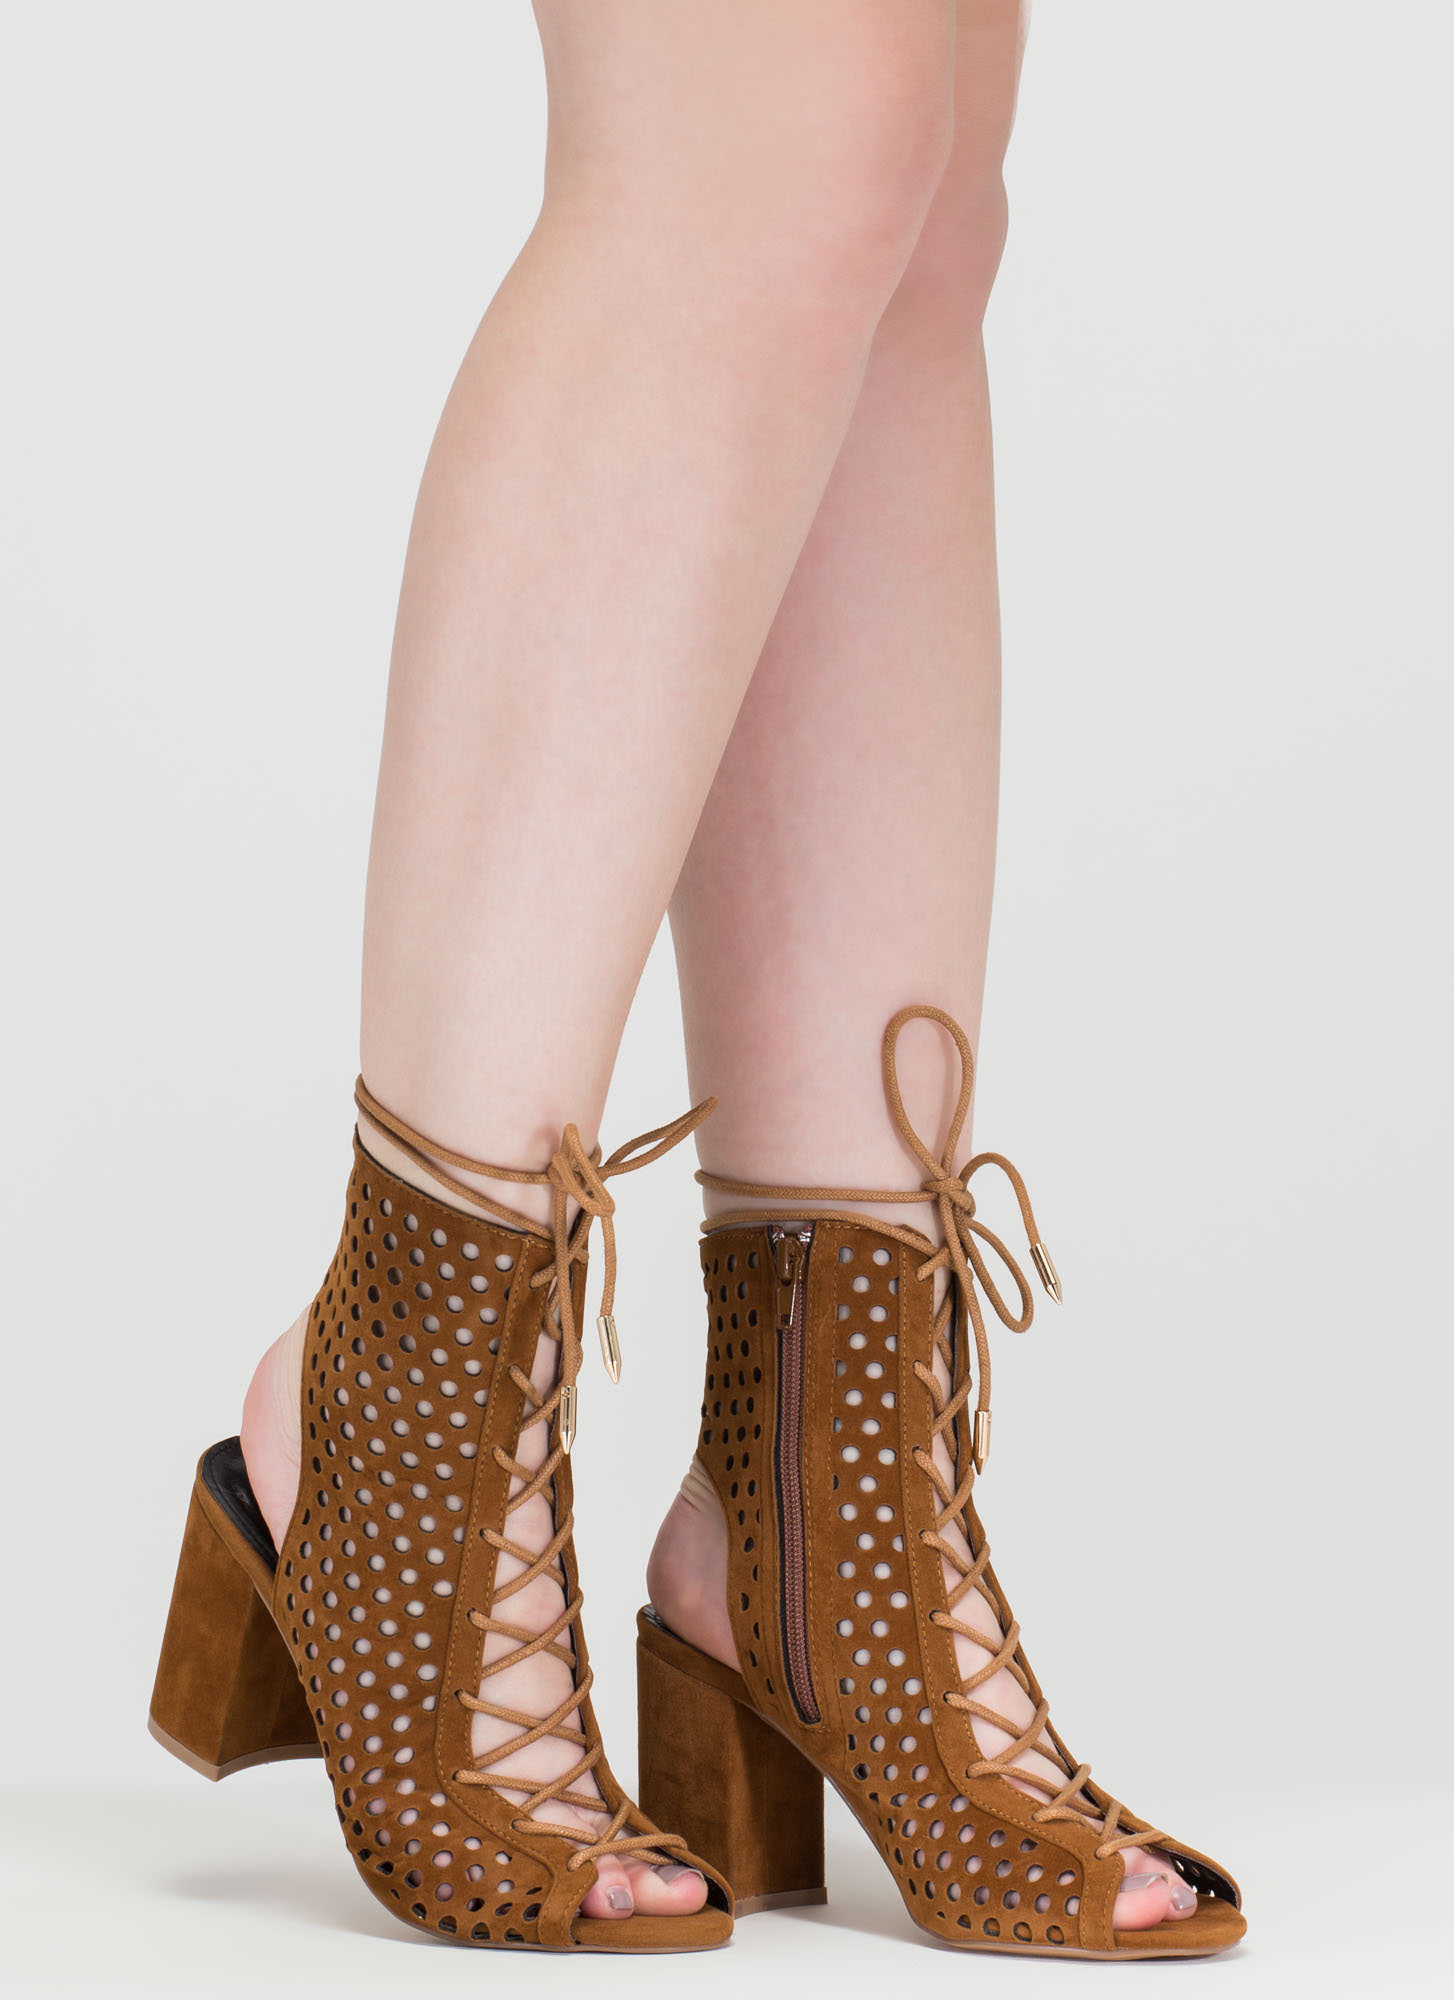 Holey One Perforated Faux Suede Booties MOCHA